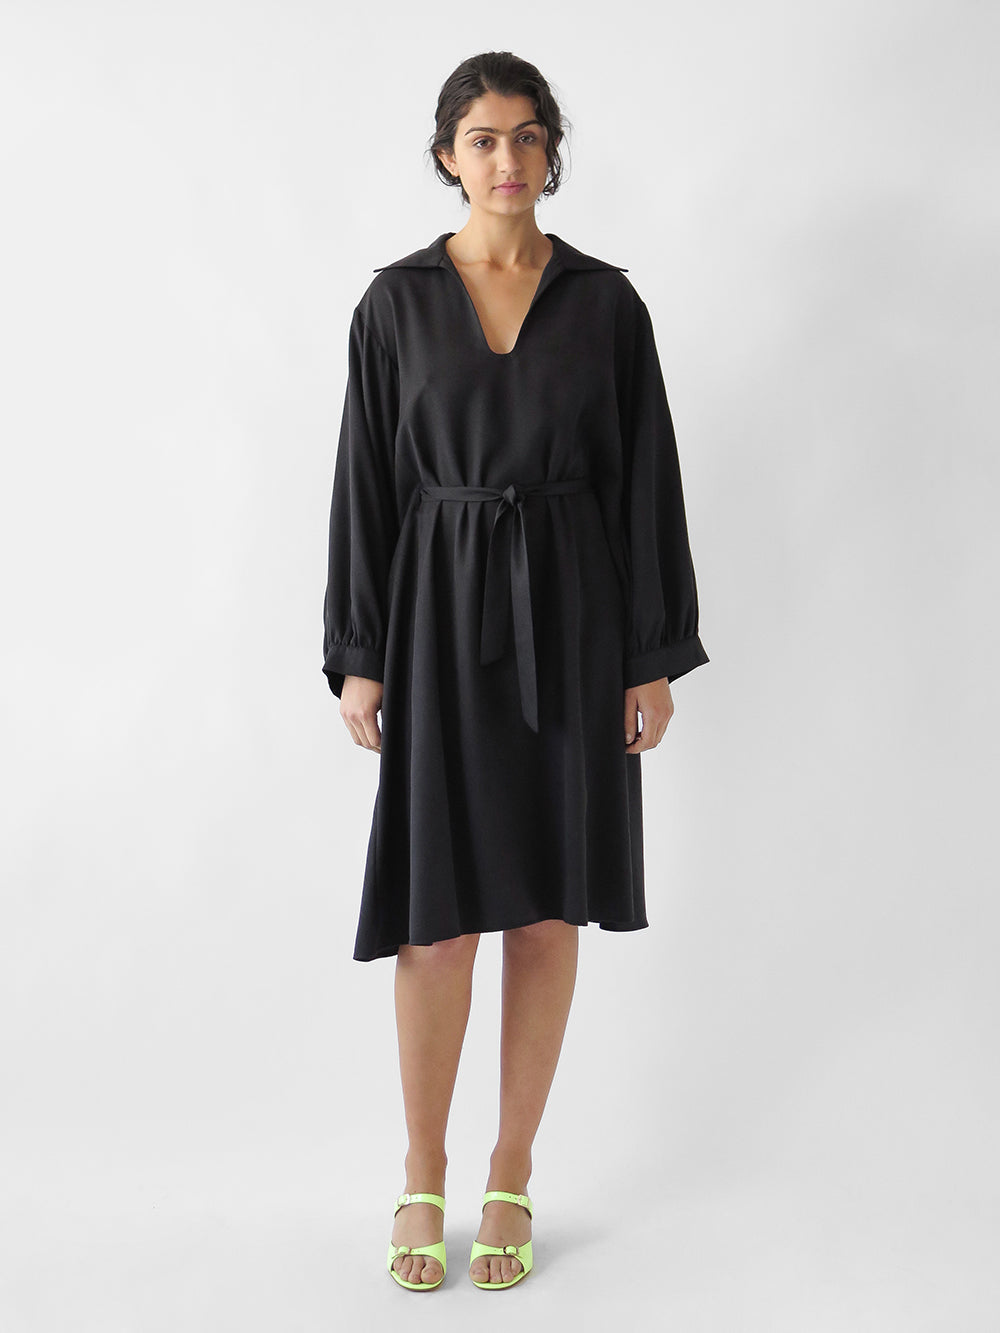 shaina mote novella dress in onyx